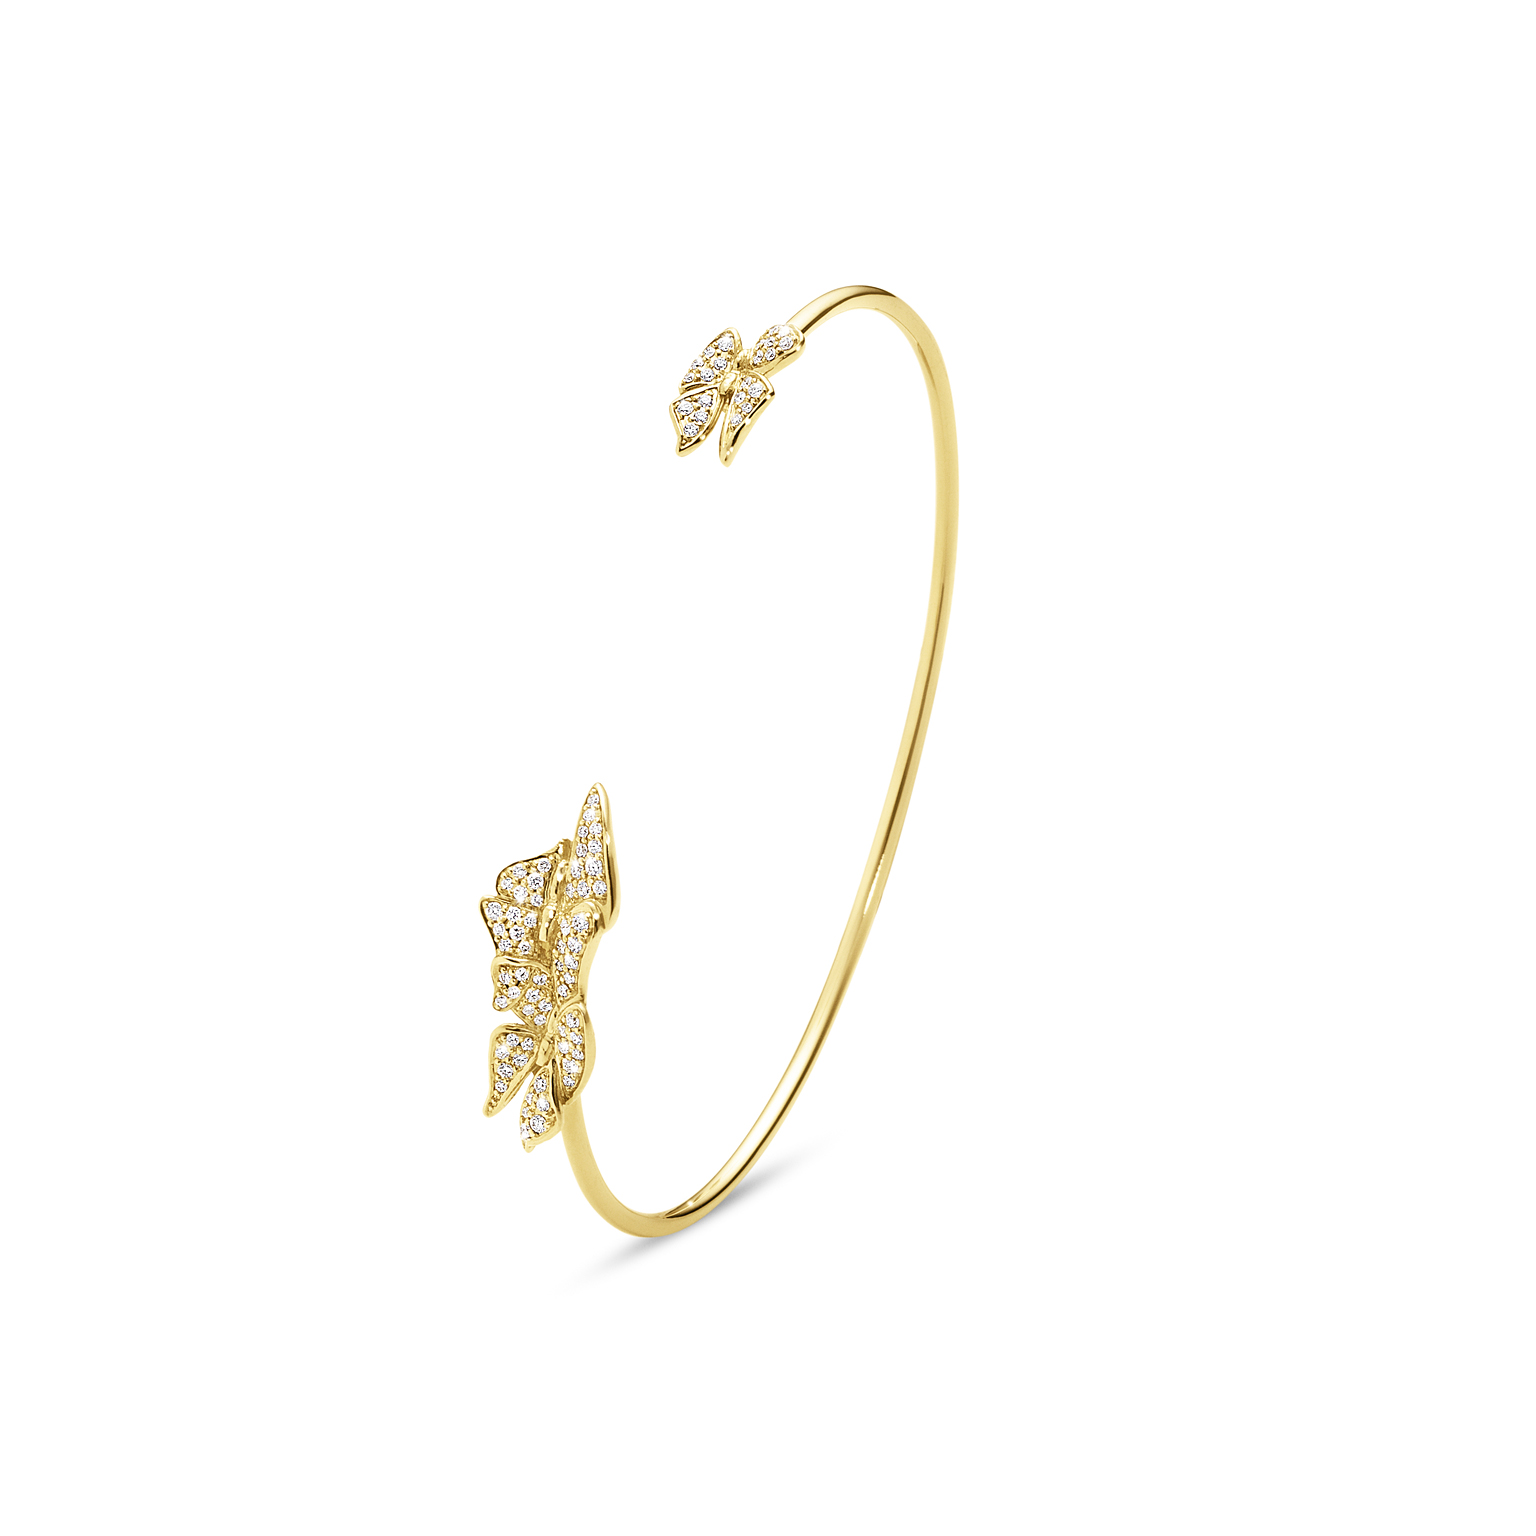 The Askill Collection for Georg Jensen  Butterfly bangle in 18K gold and diamonds.